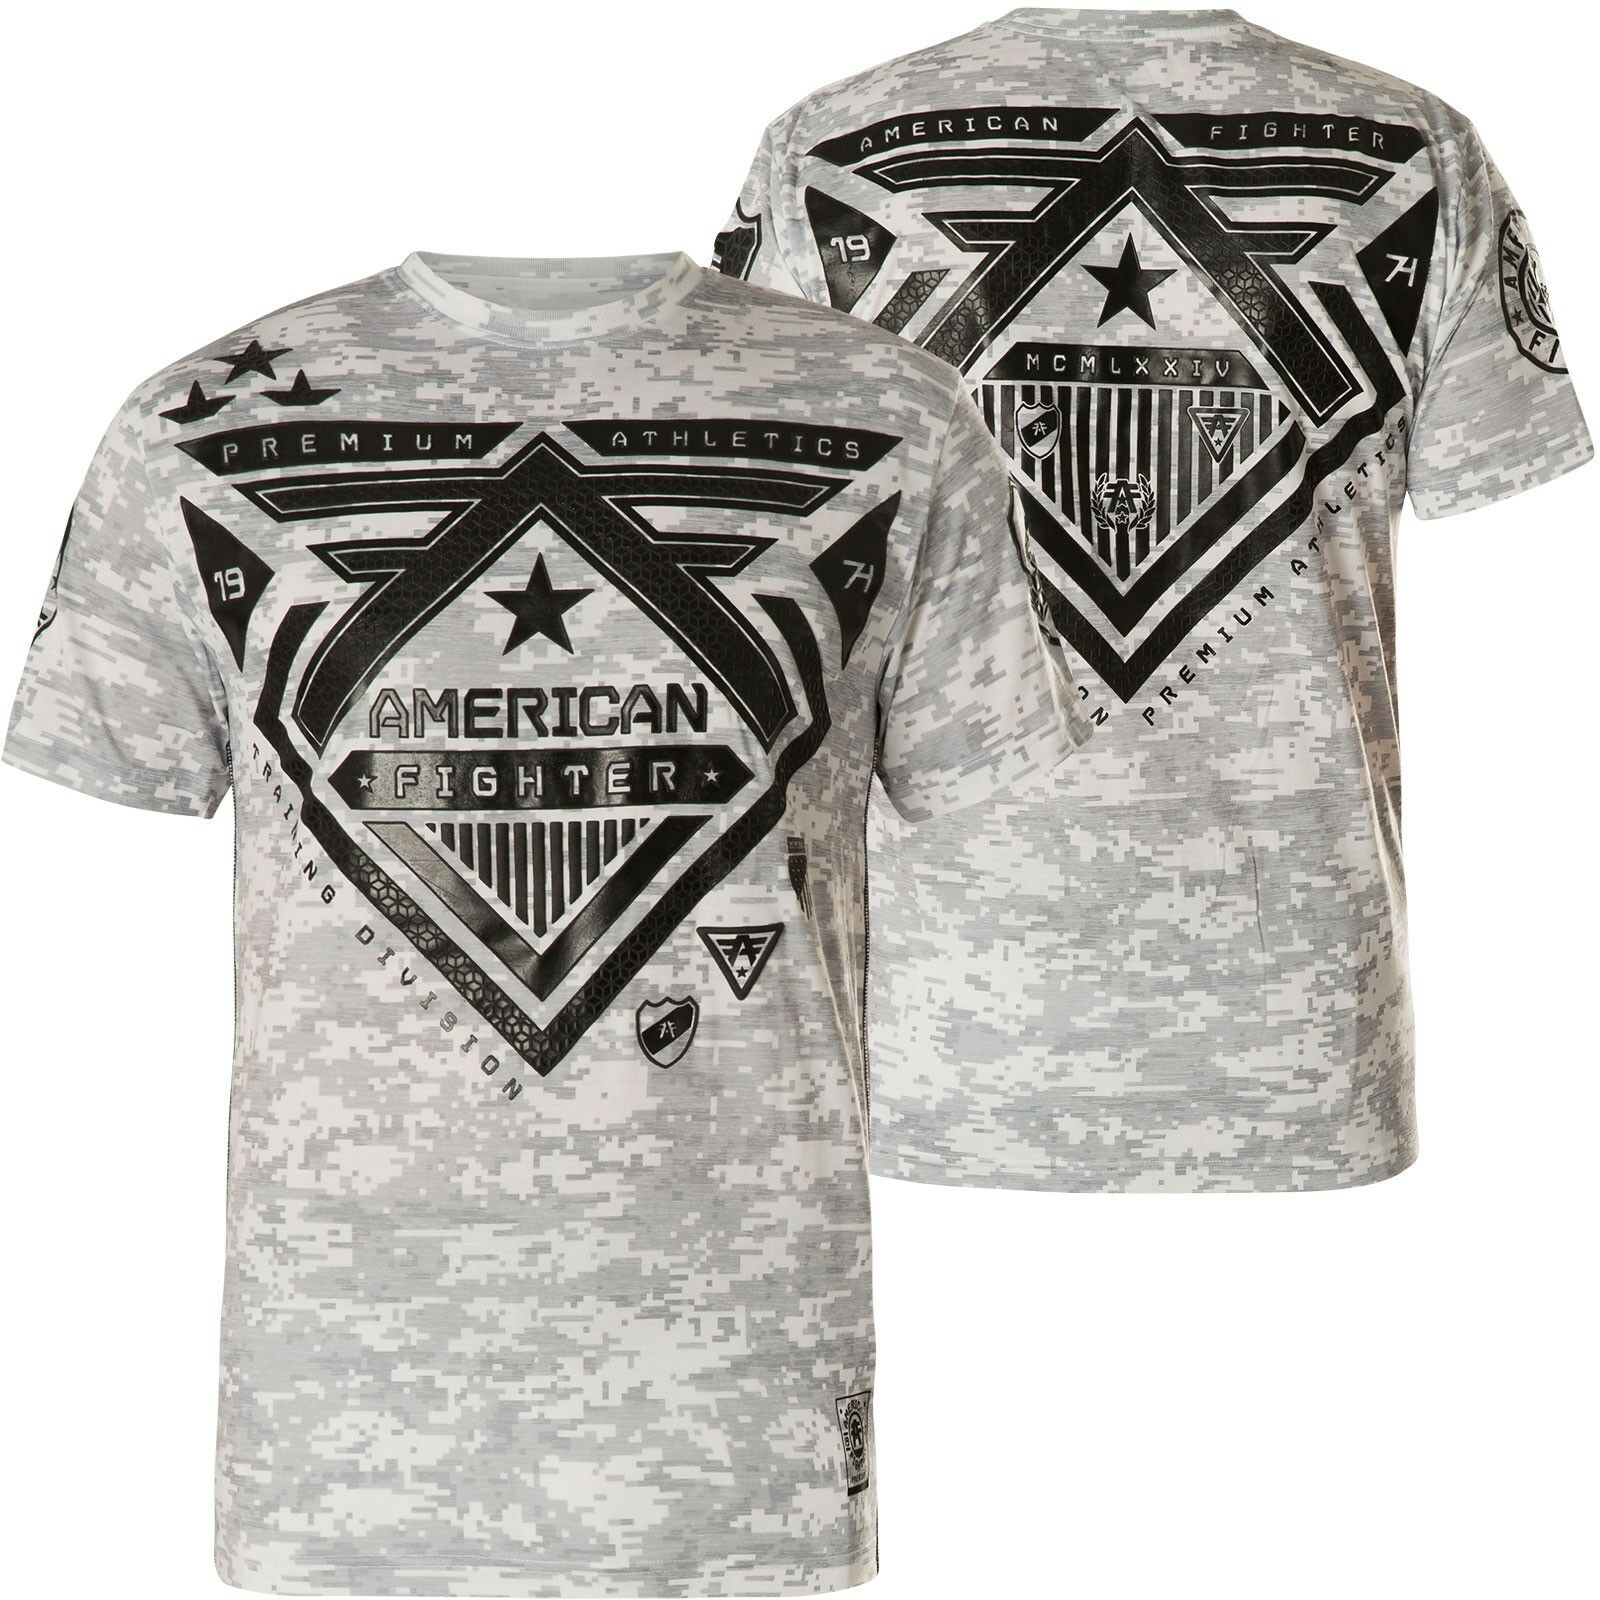 AMERICAN FIGHTER Affliction T-Shirt Wolf Lake Weiß T-Shirts